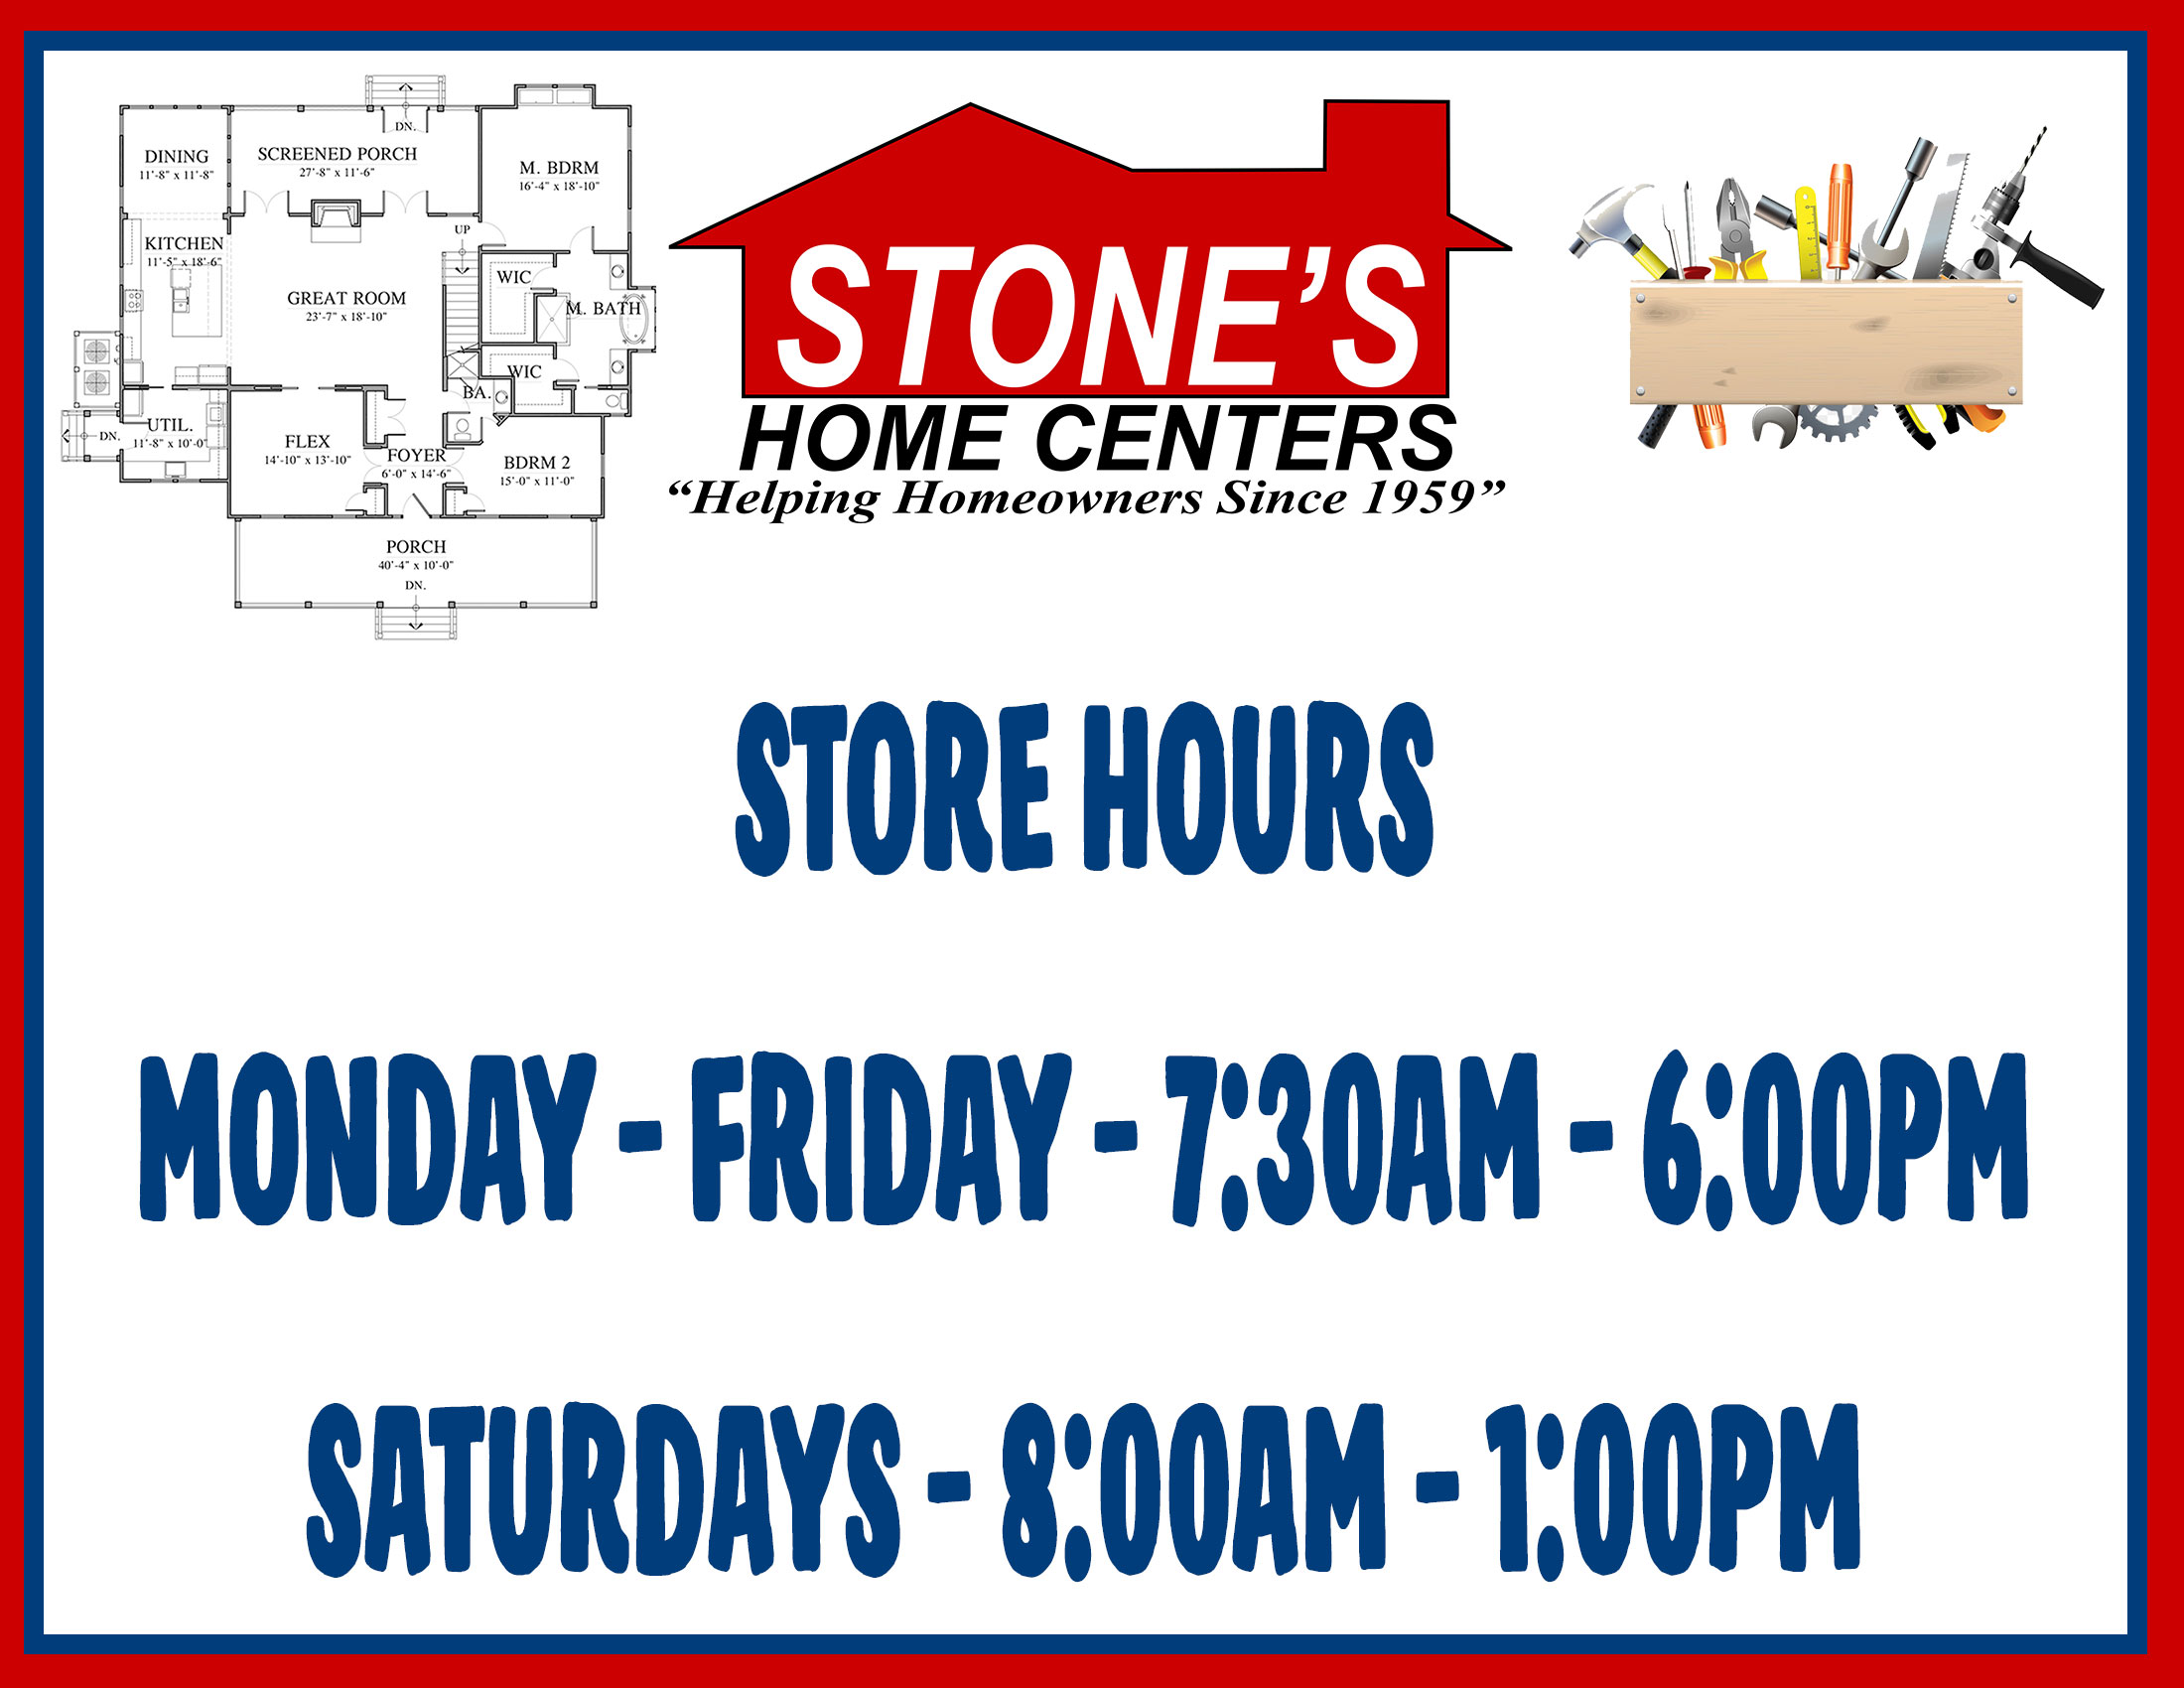 Store-Hours-sign.jpg?Revision=Dlkm&Timestamp=QbHjjG